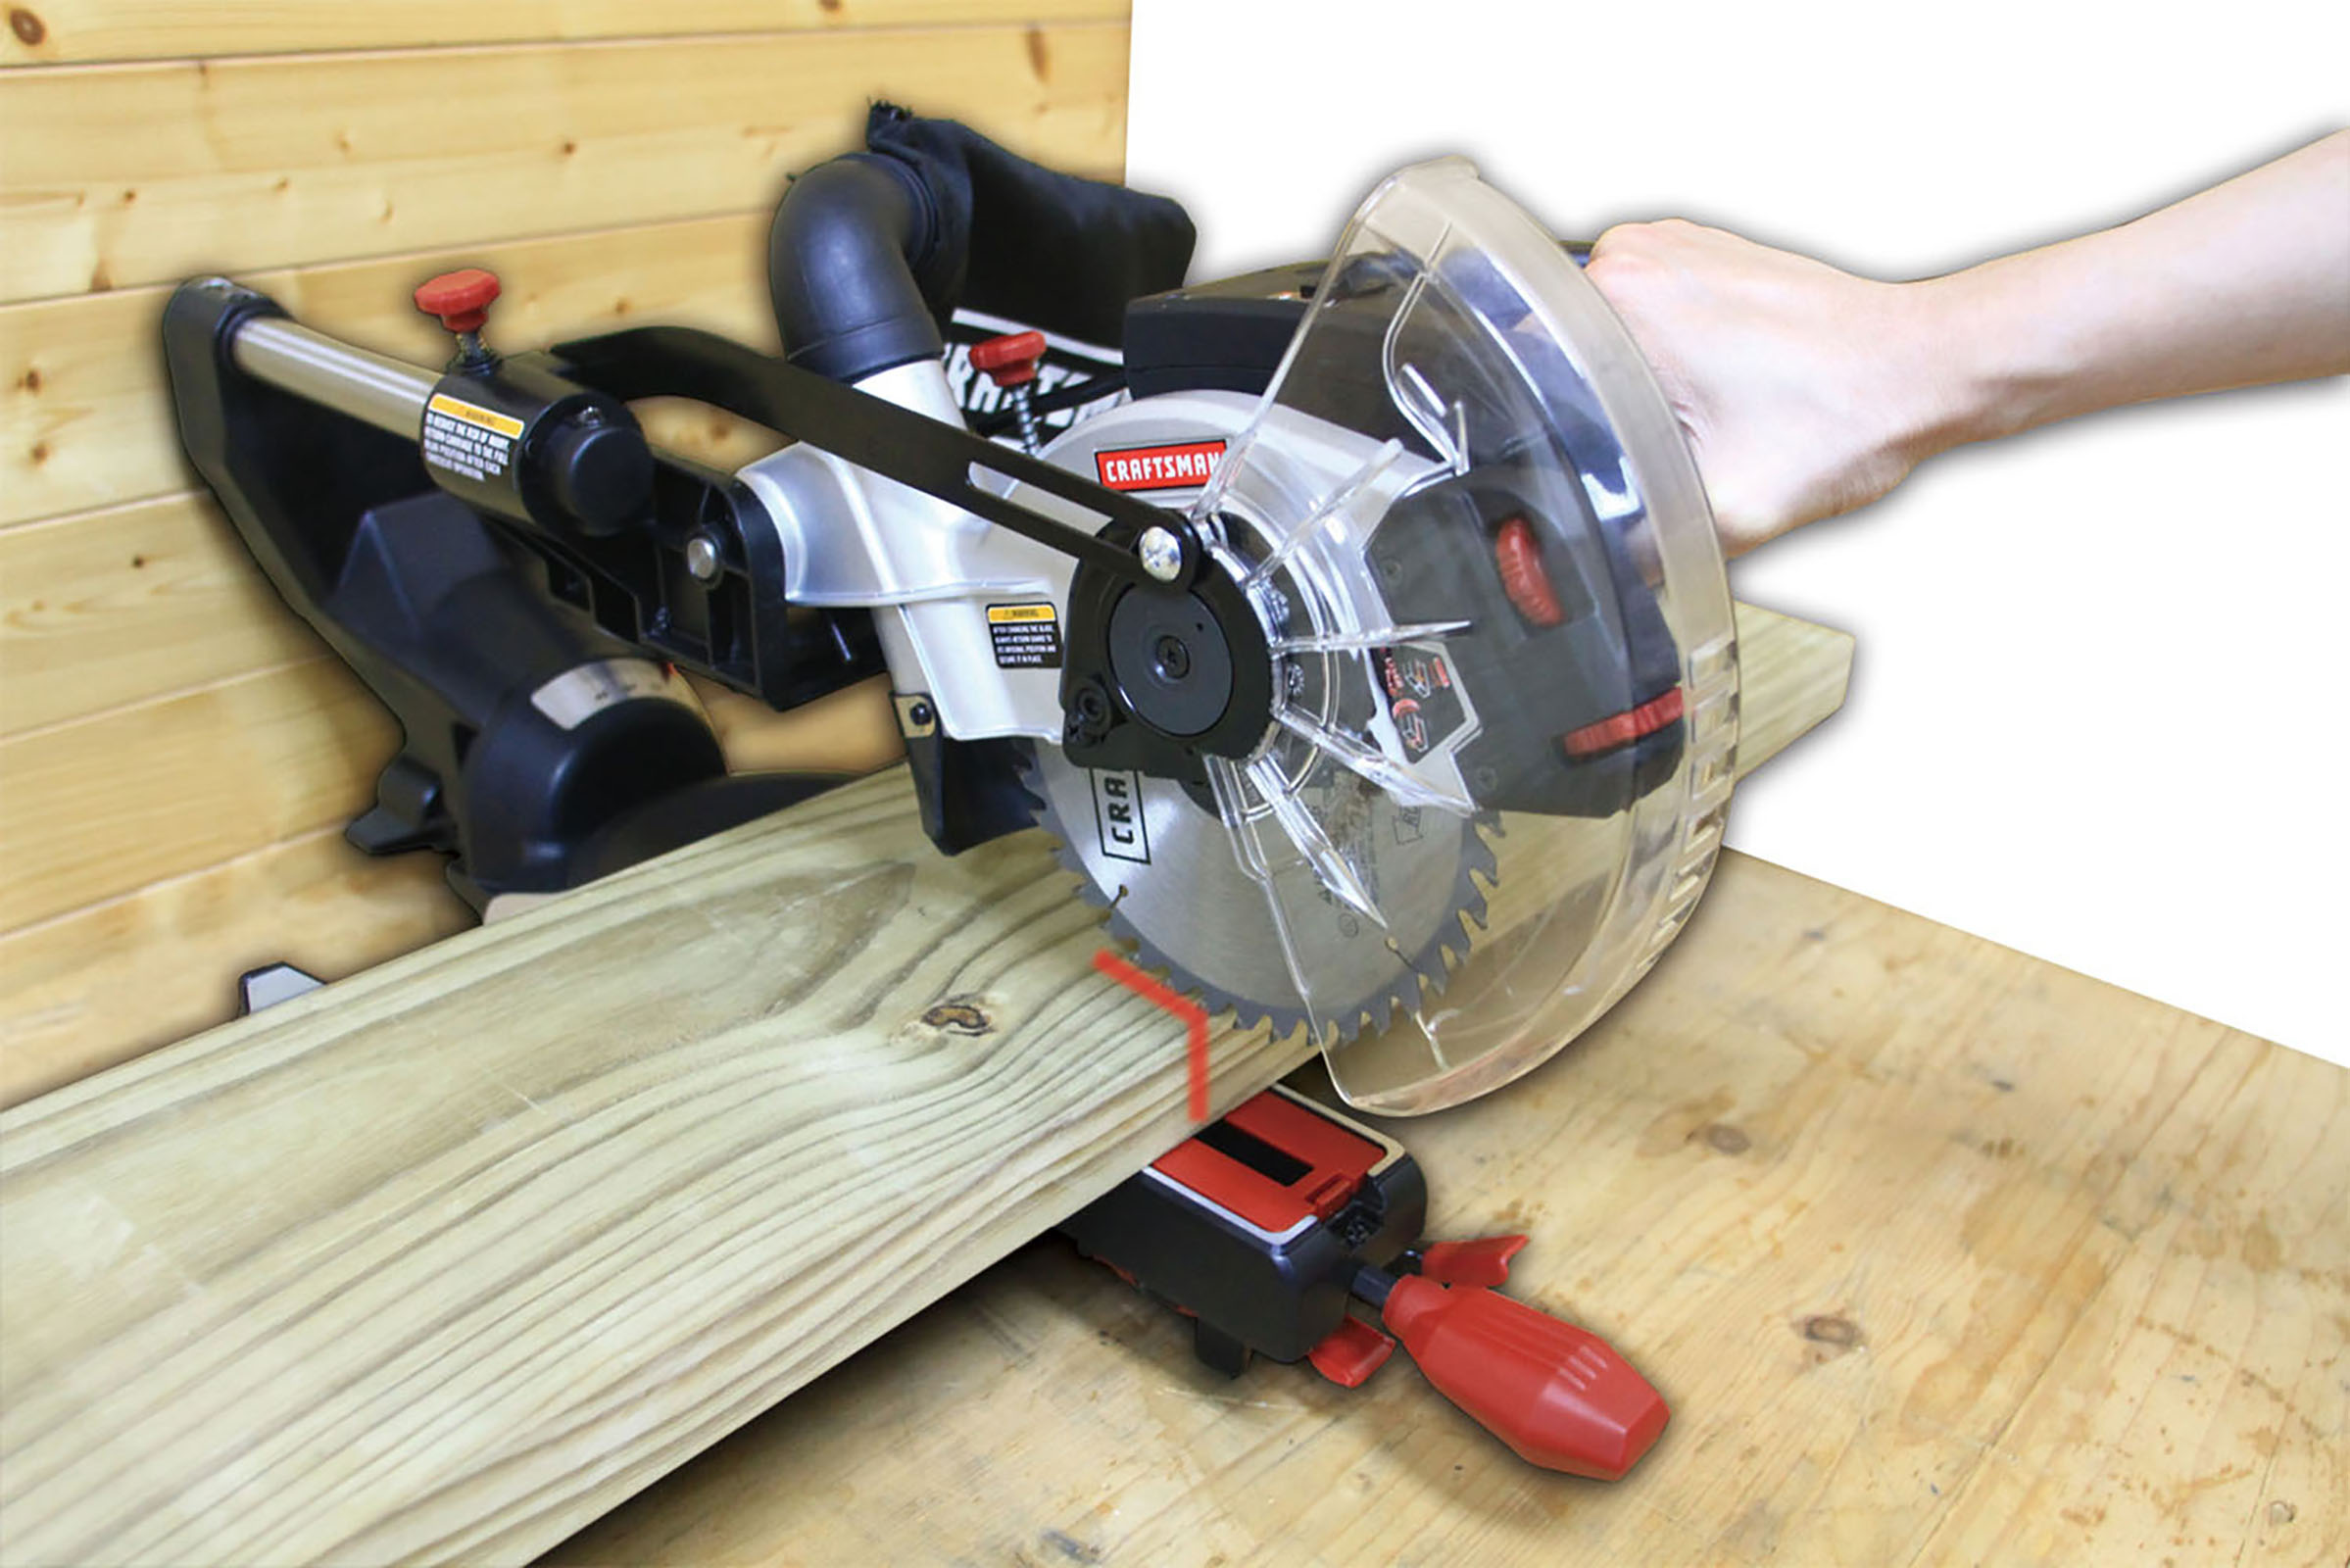 Craftsman 7 1/4-Inch Compact Sliding Compound Miter Saw